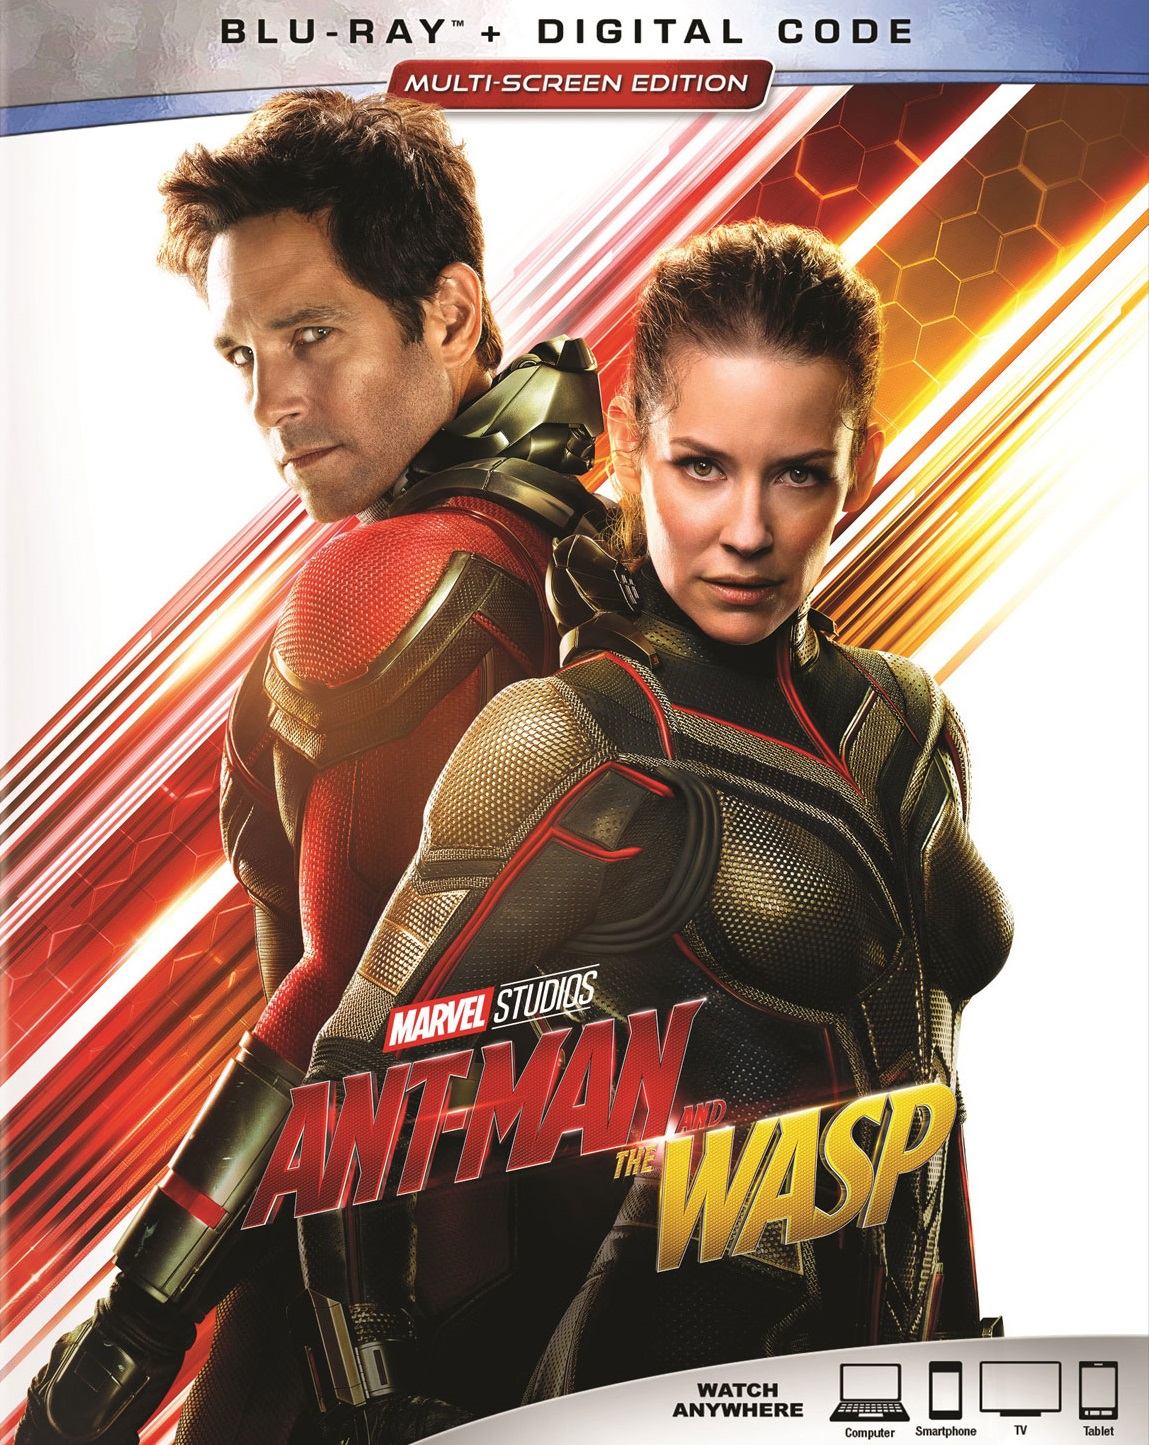 Descargar Ant-Man And The Wasp BD25 1080p LATINO